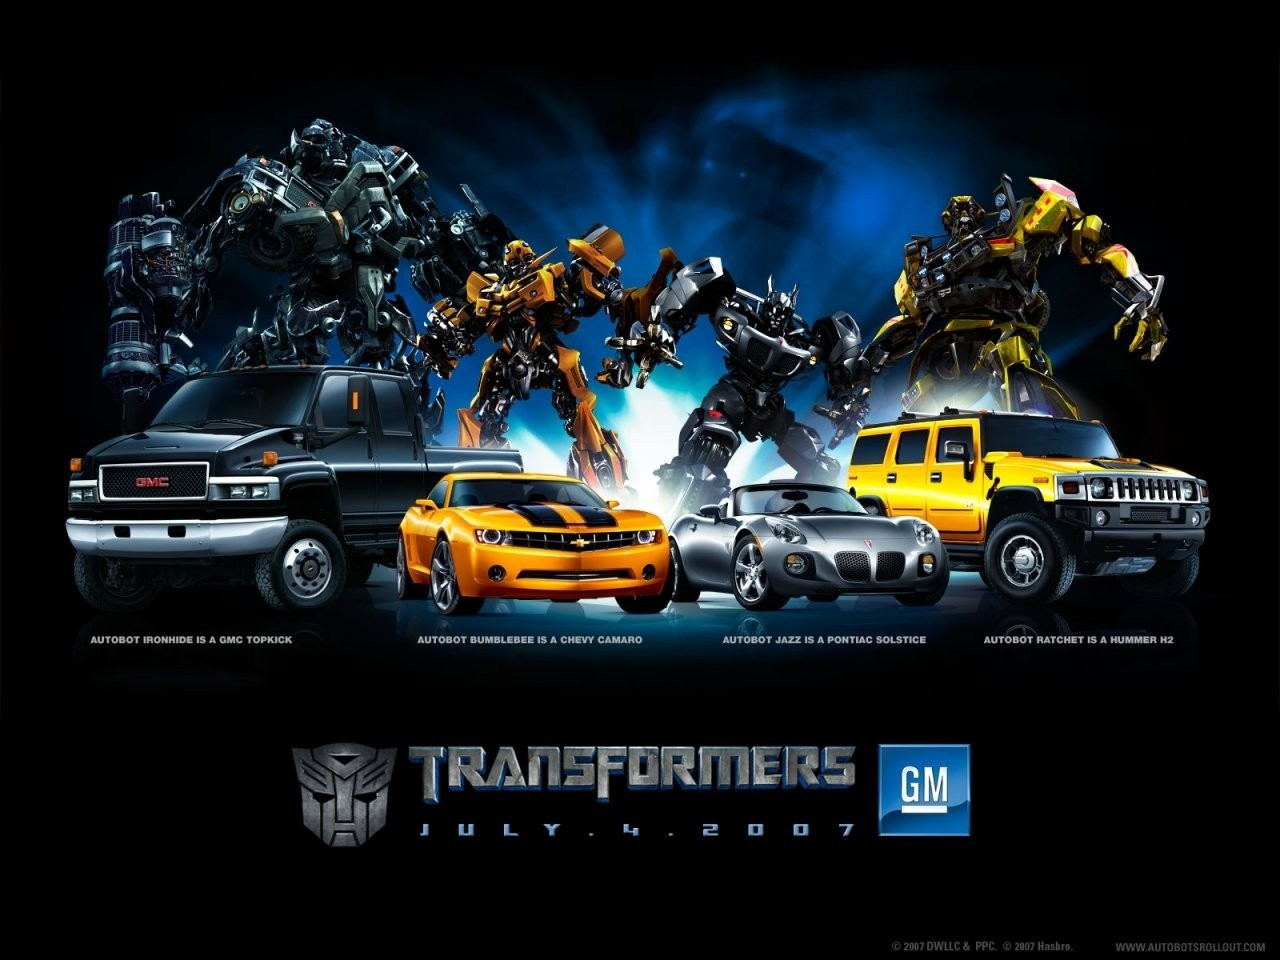 Un wallpaper del film Transformers